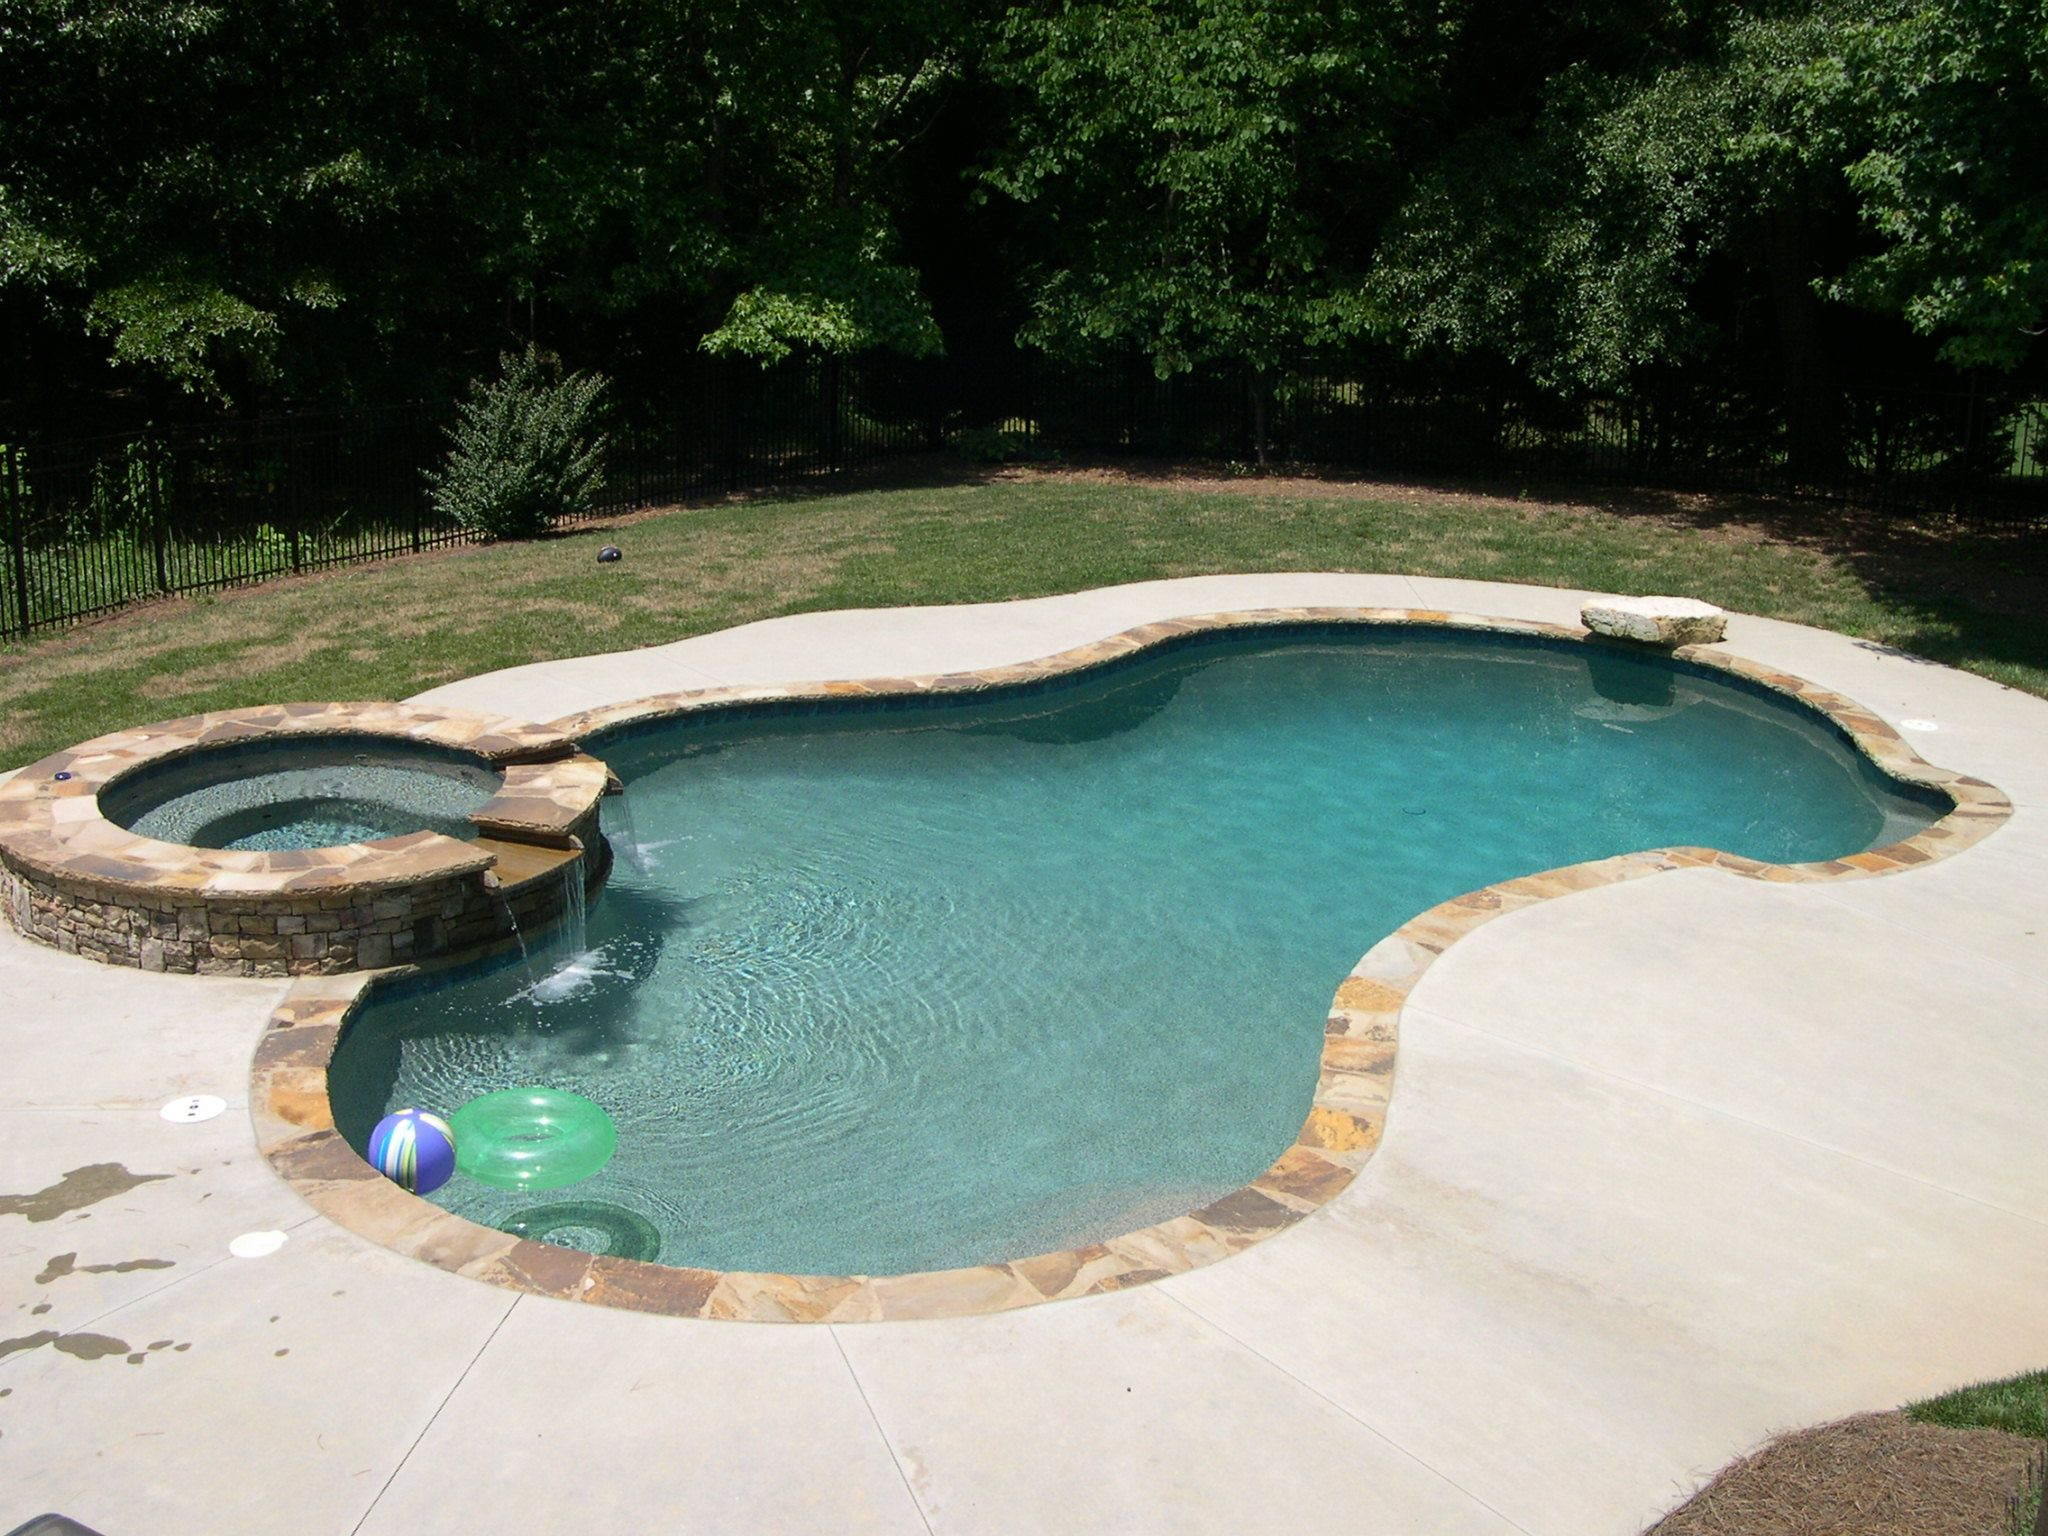 designs for small yards small pool designs perth and swimming pools - Swim Pool Designs